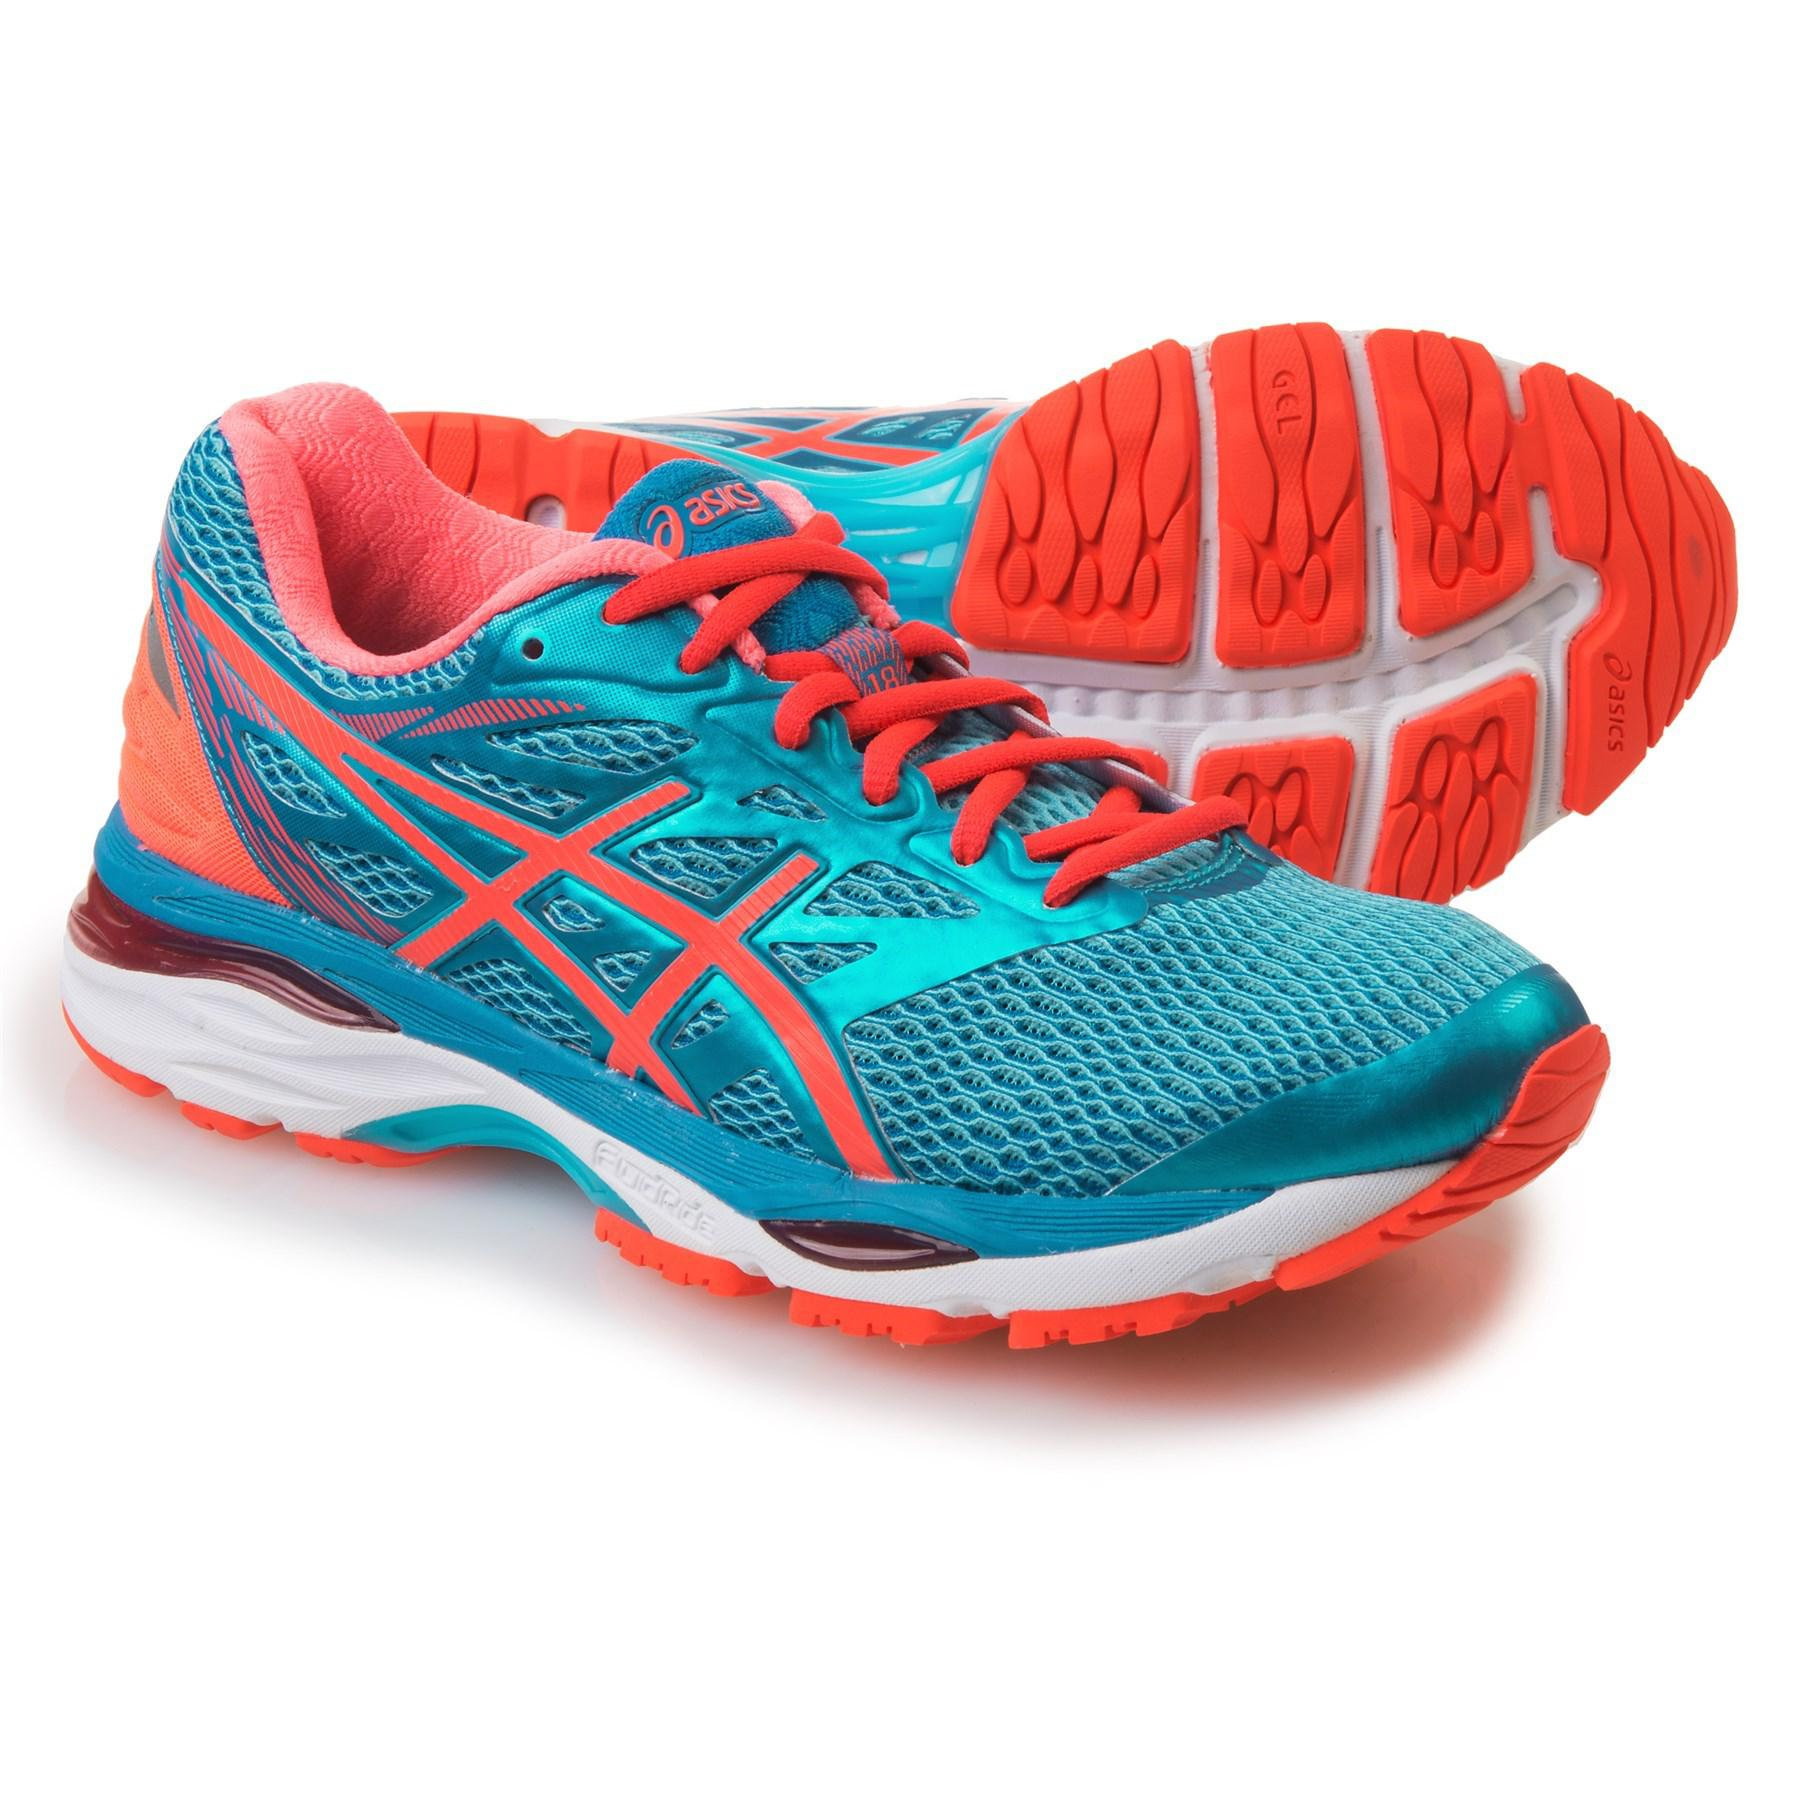 Blue Gel cumulus 18 Running Shoes (for Women)